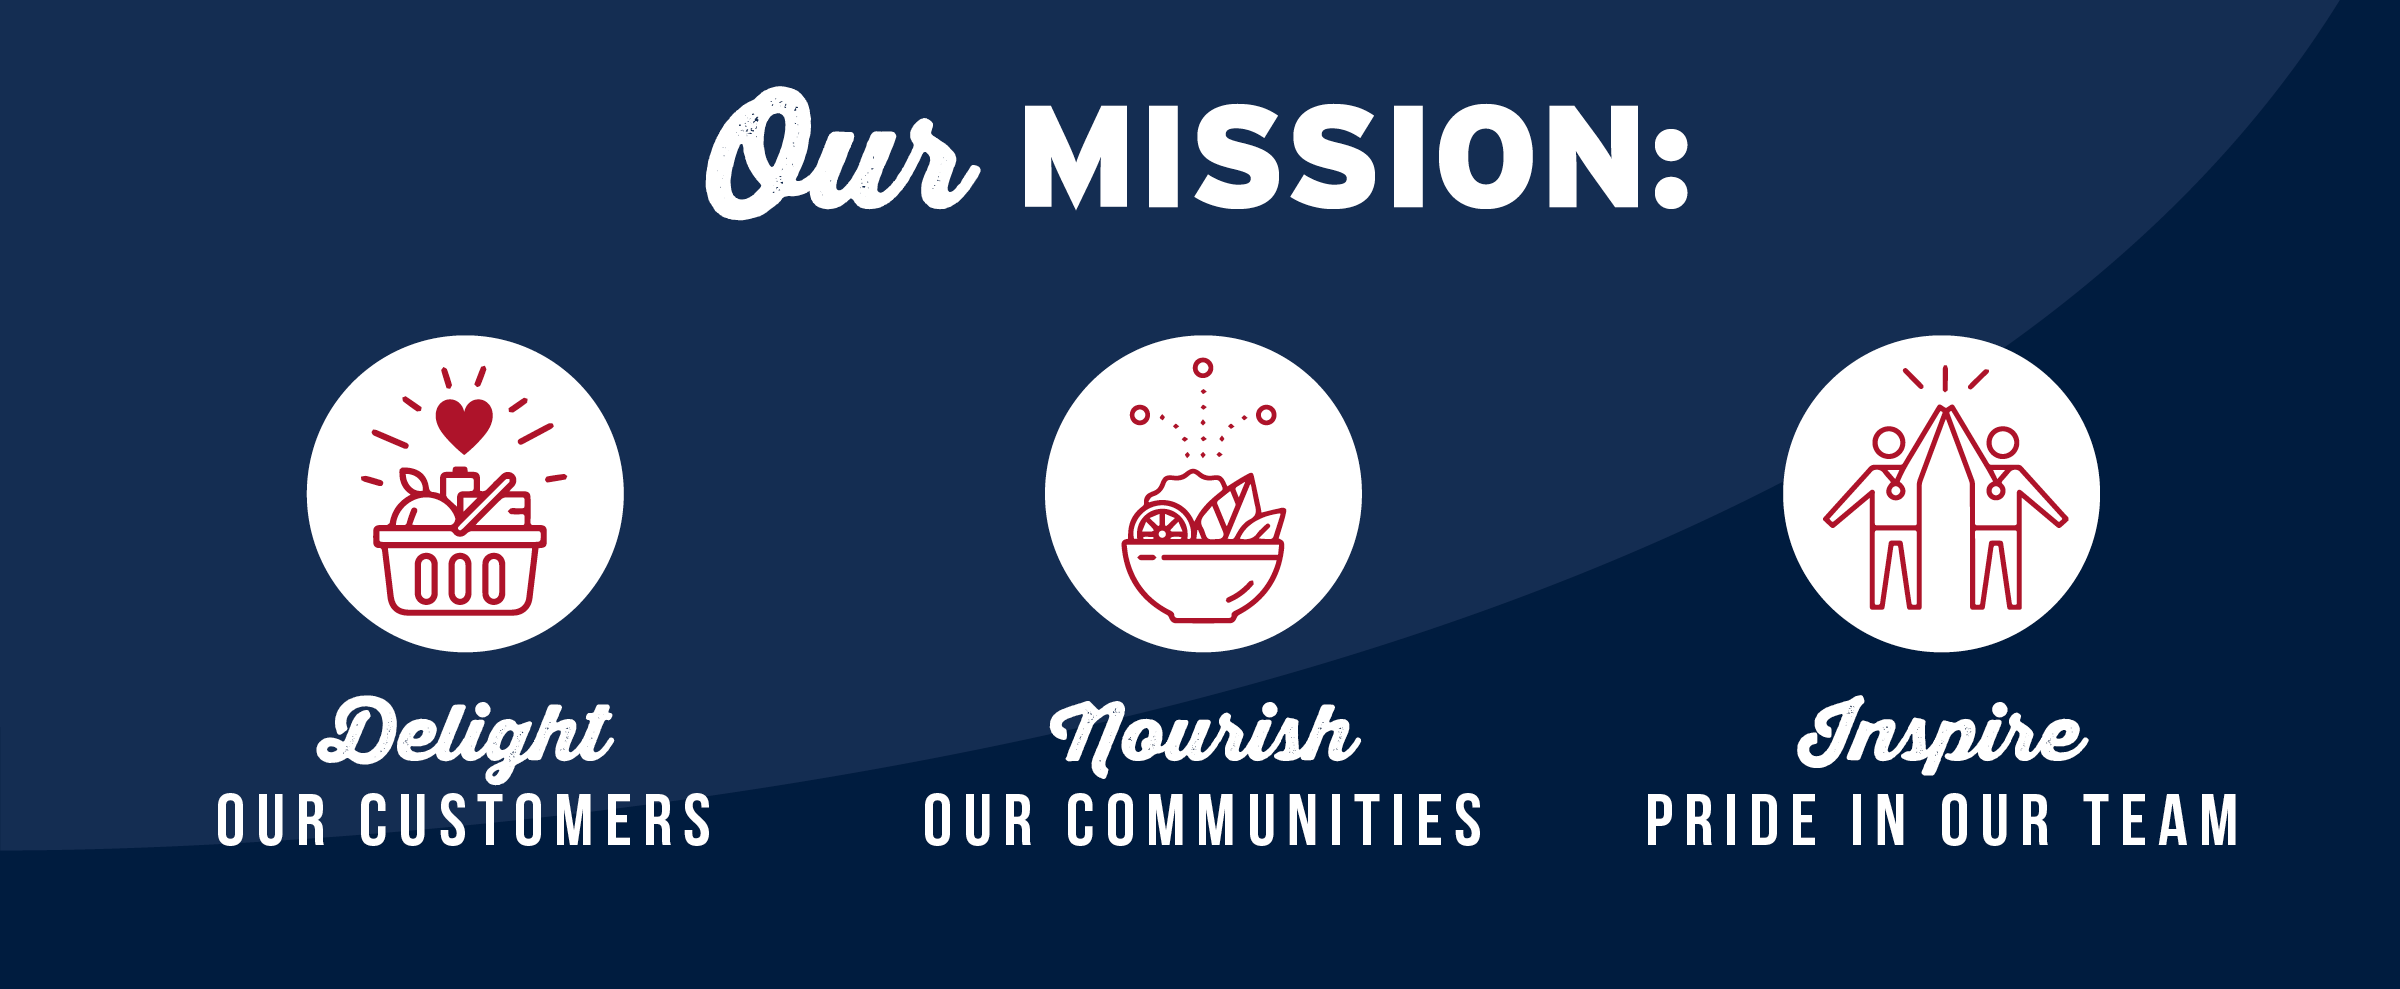 Our Mission: Delight Our Customers, Nourish Our Communities, Inspire Pride In Our Team